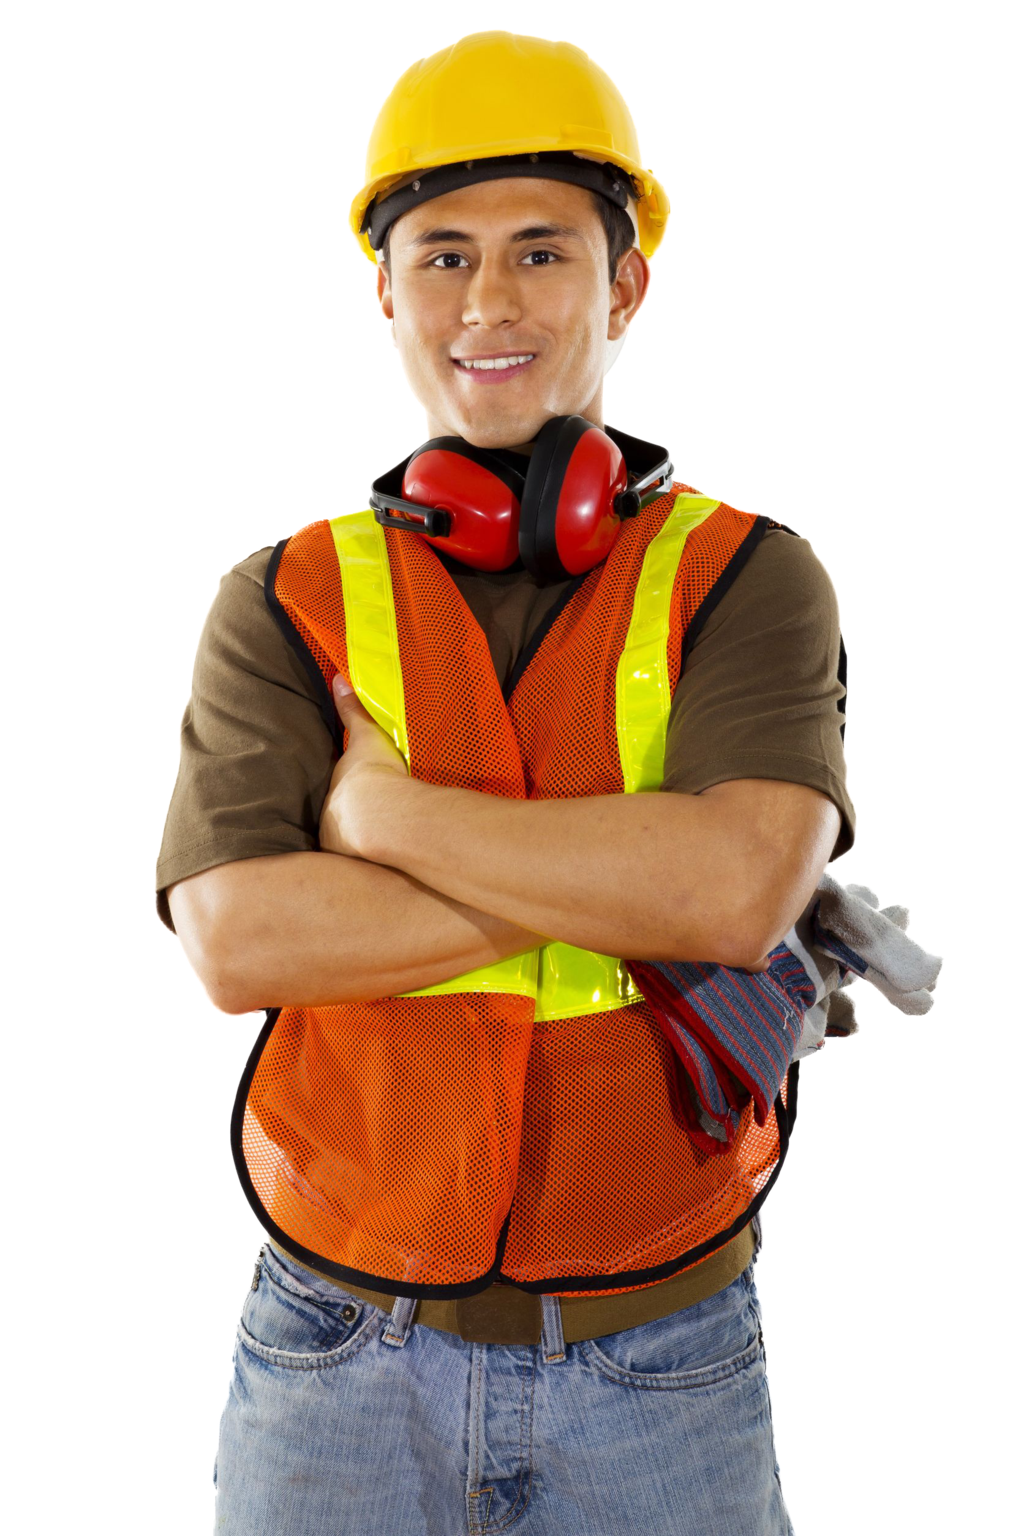 industrail worker png image purepng free transparent cc0 png